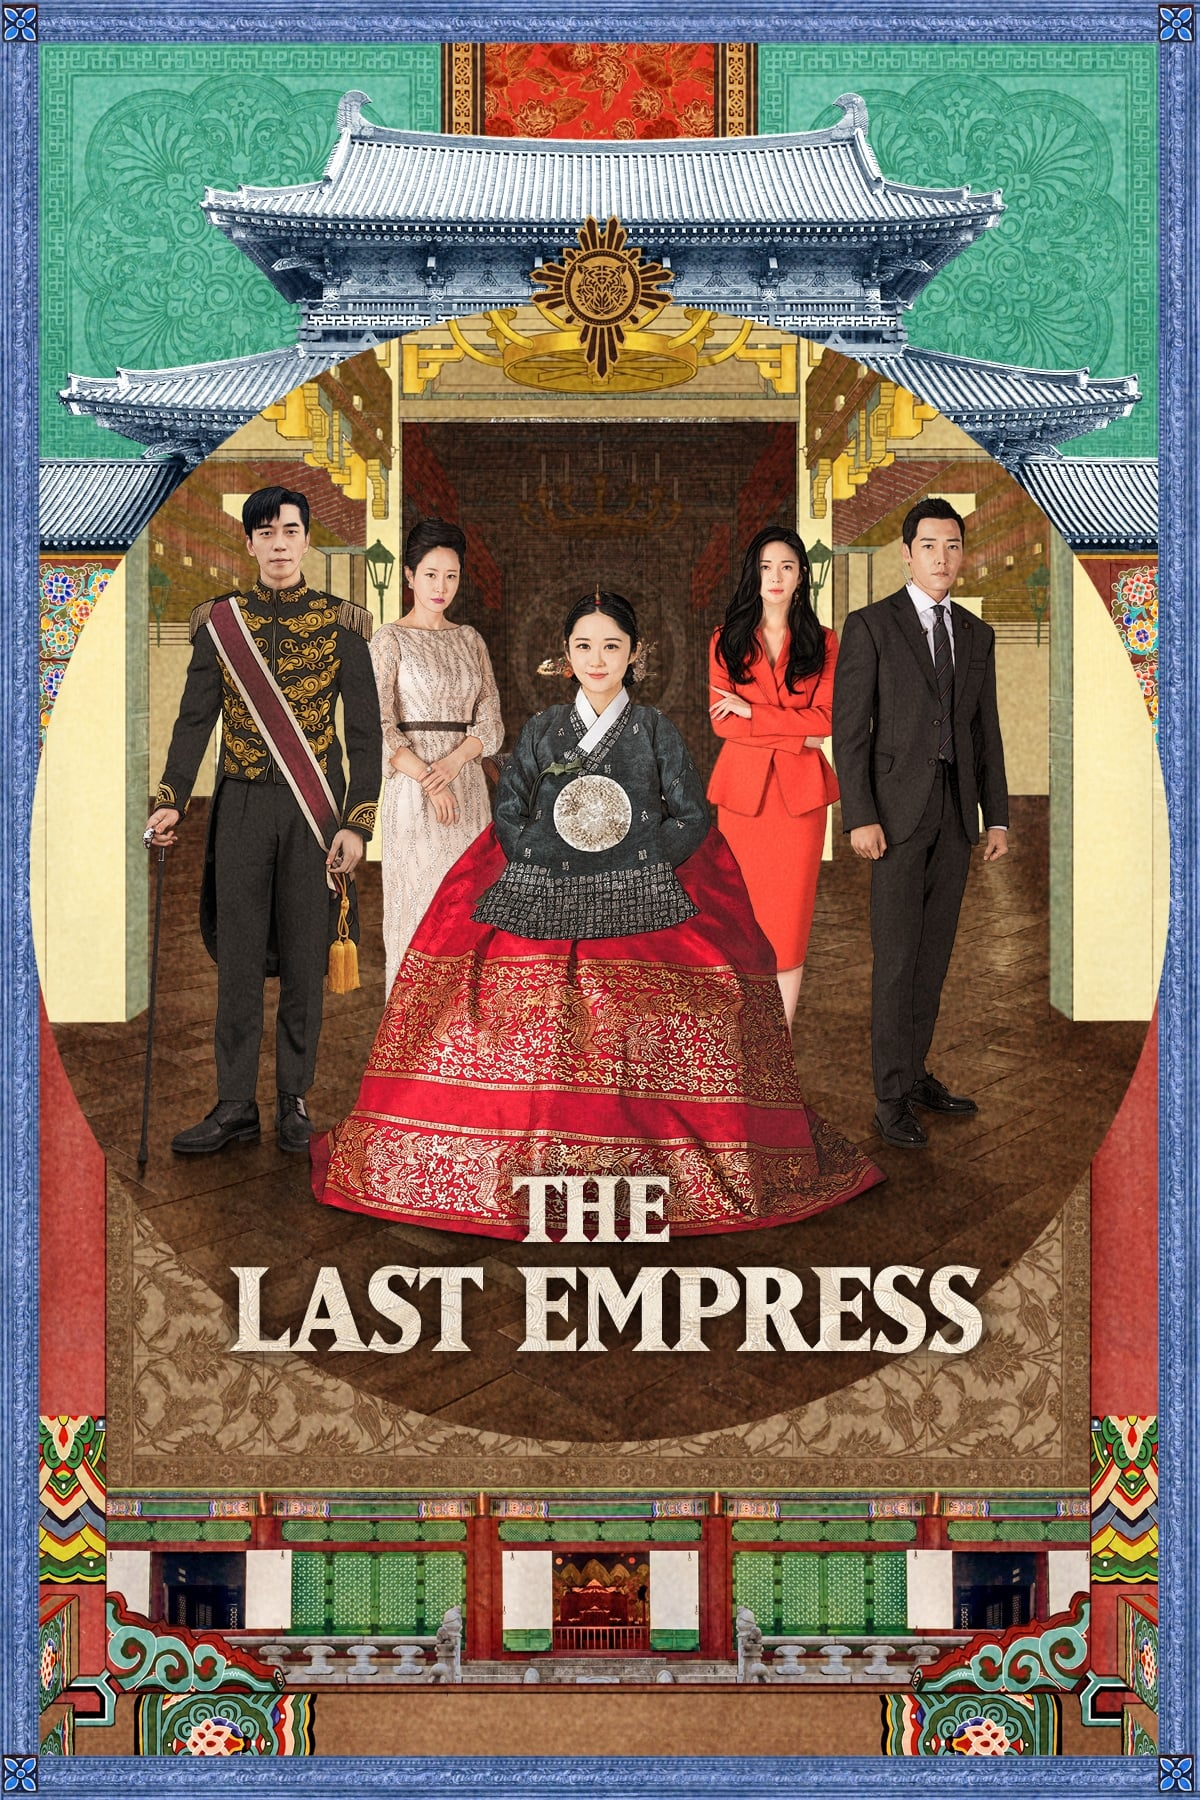 The Last Empress Episode 22